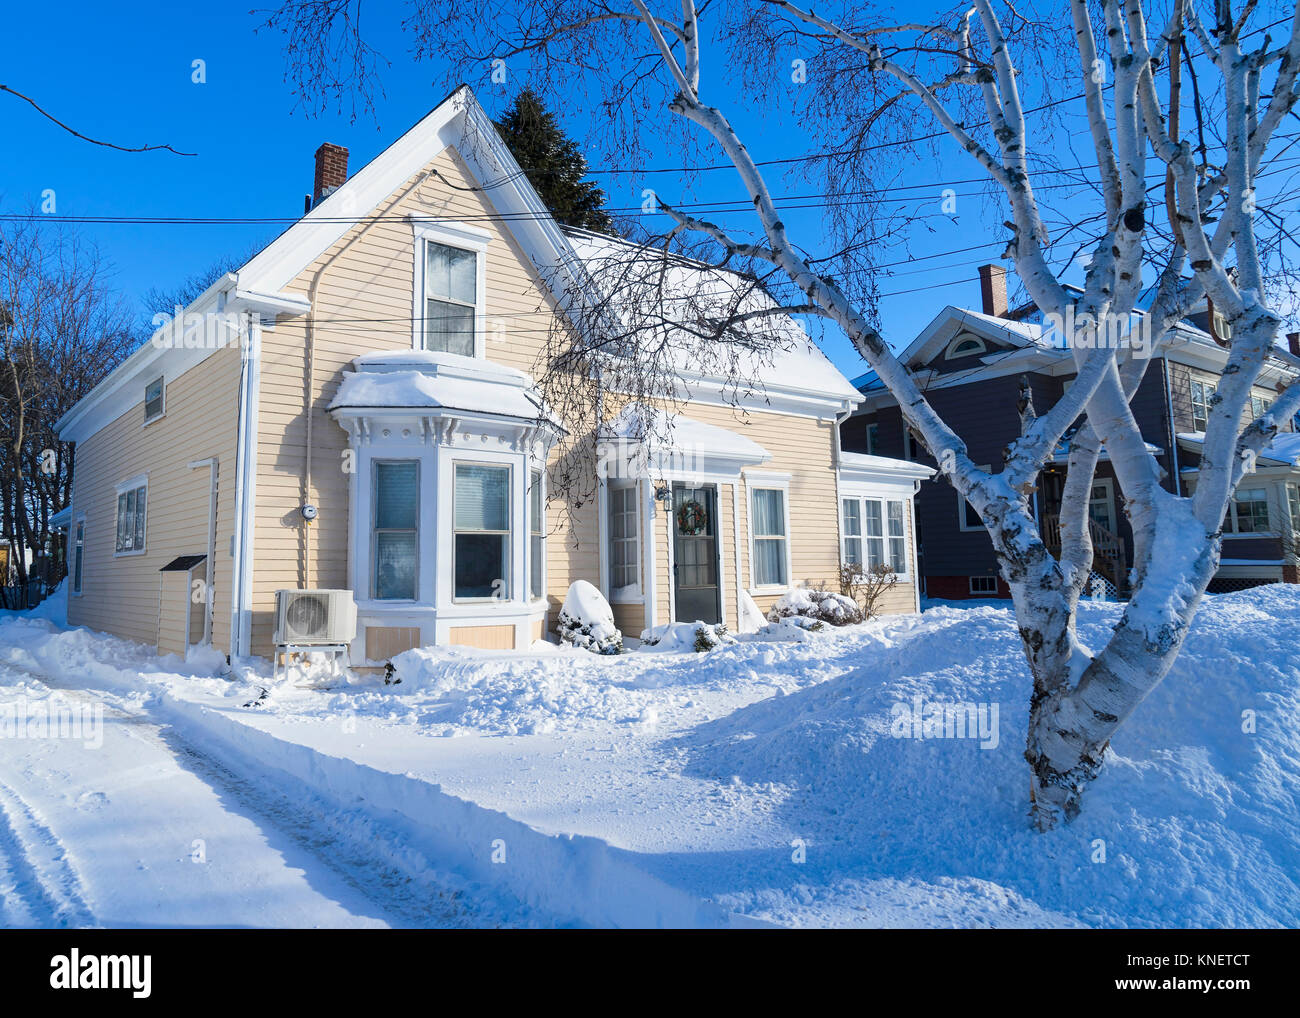 Older traditional house in wintertime in a North American neighborhood. - Stock Image